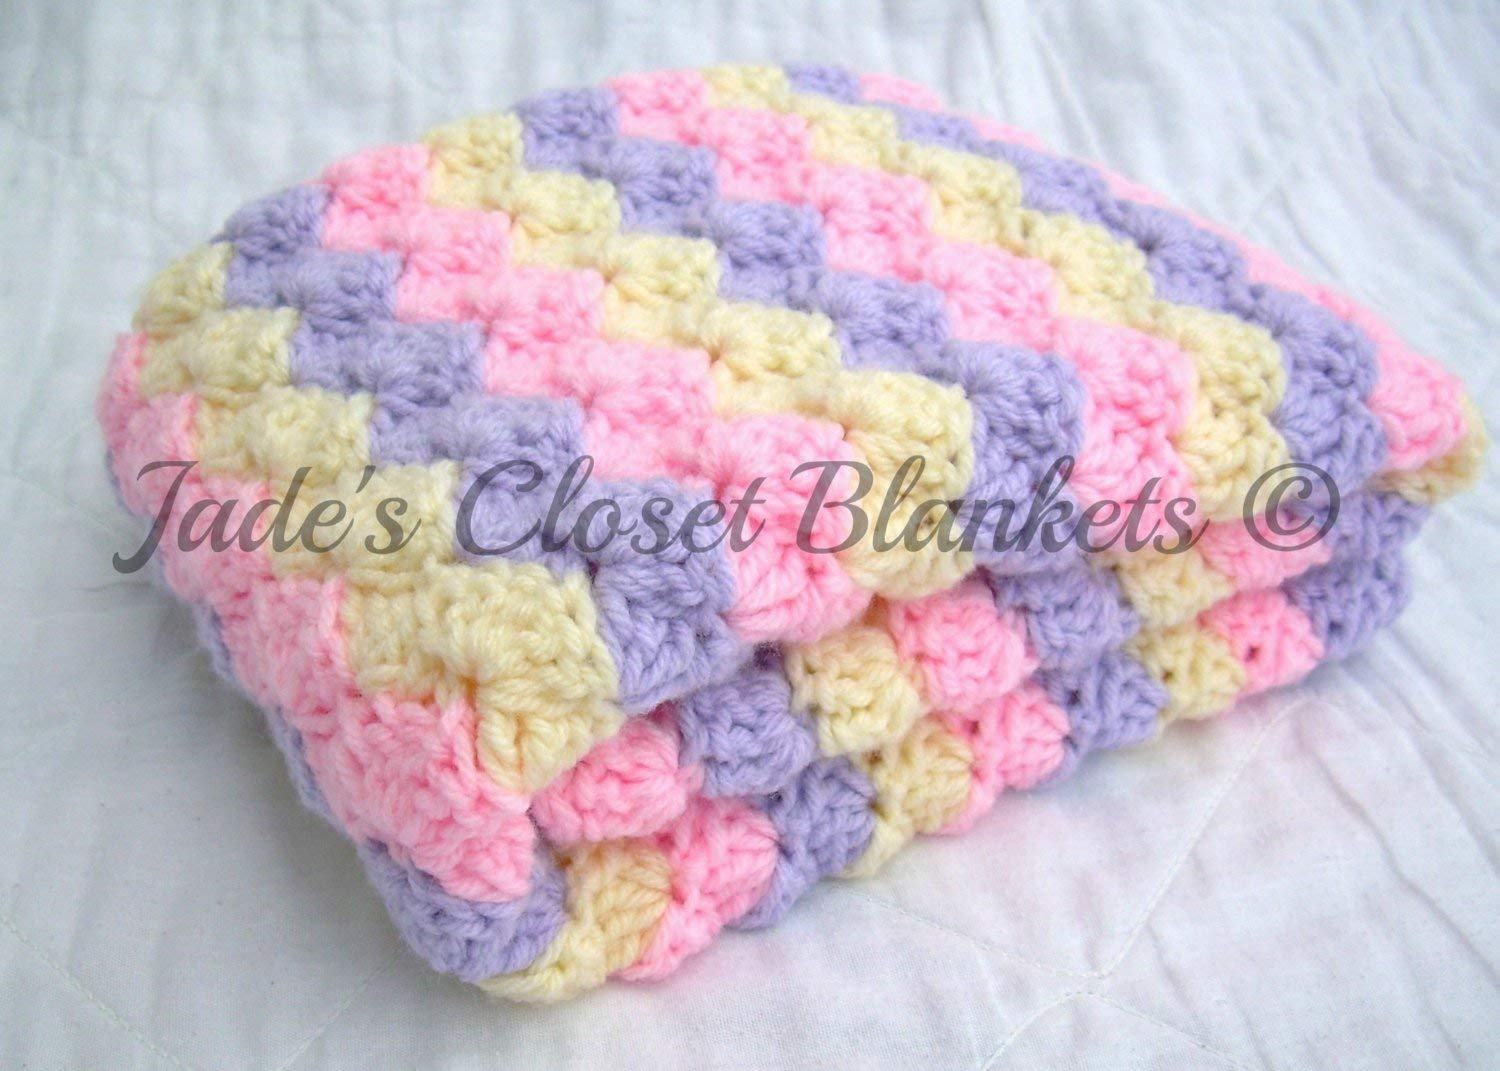 Soft Green and Cream Crocheted Baby Girl Afghan  Blanket in Pink Soft Purple